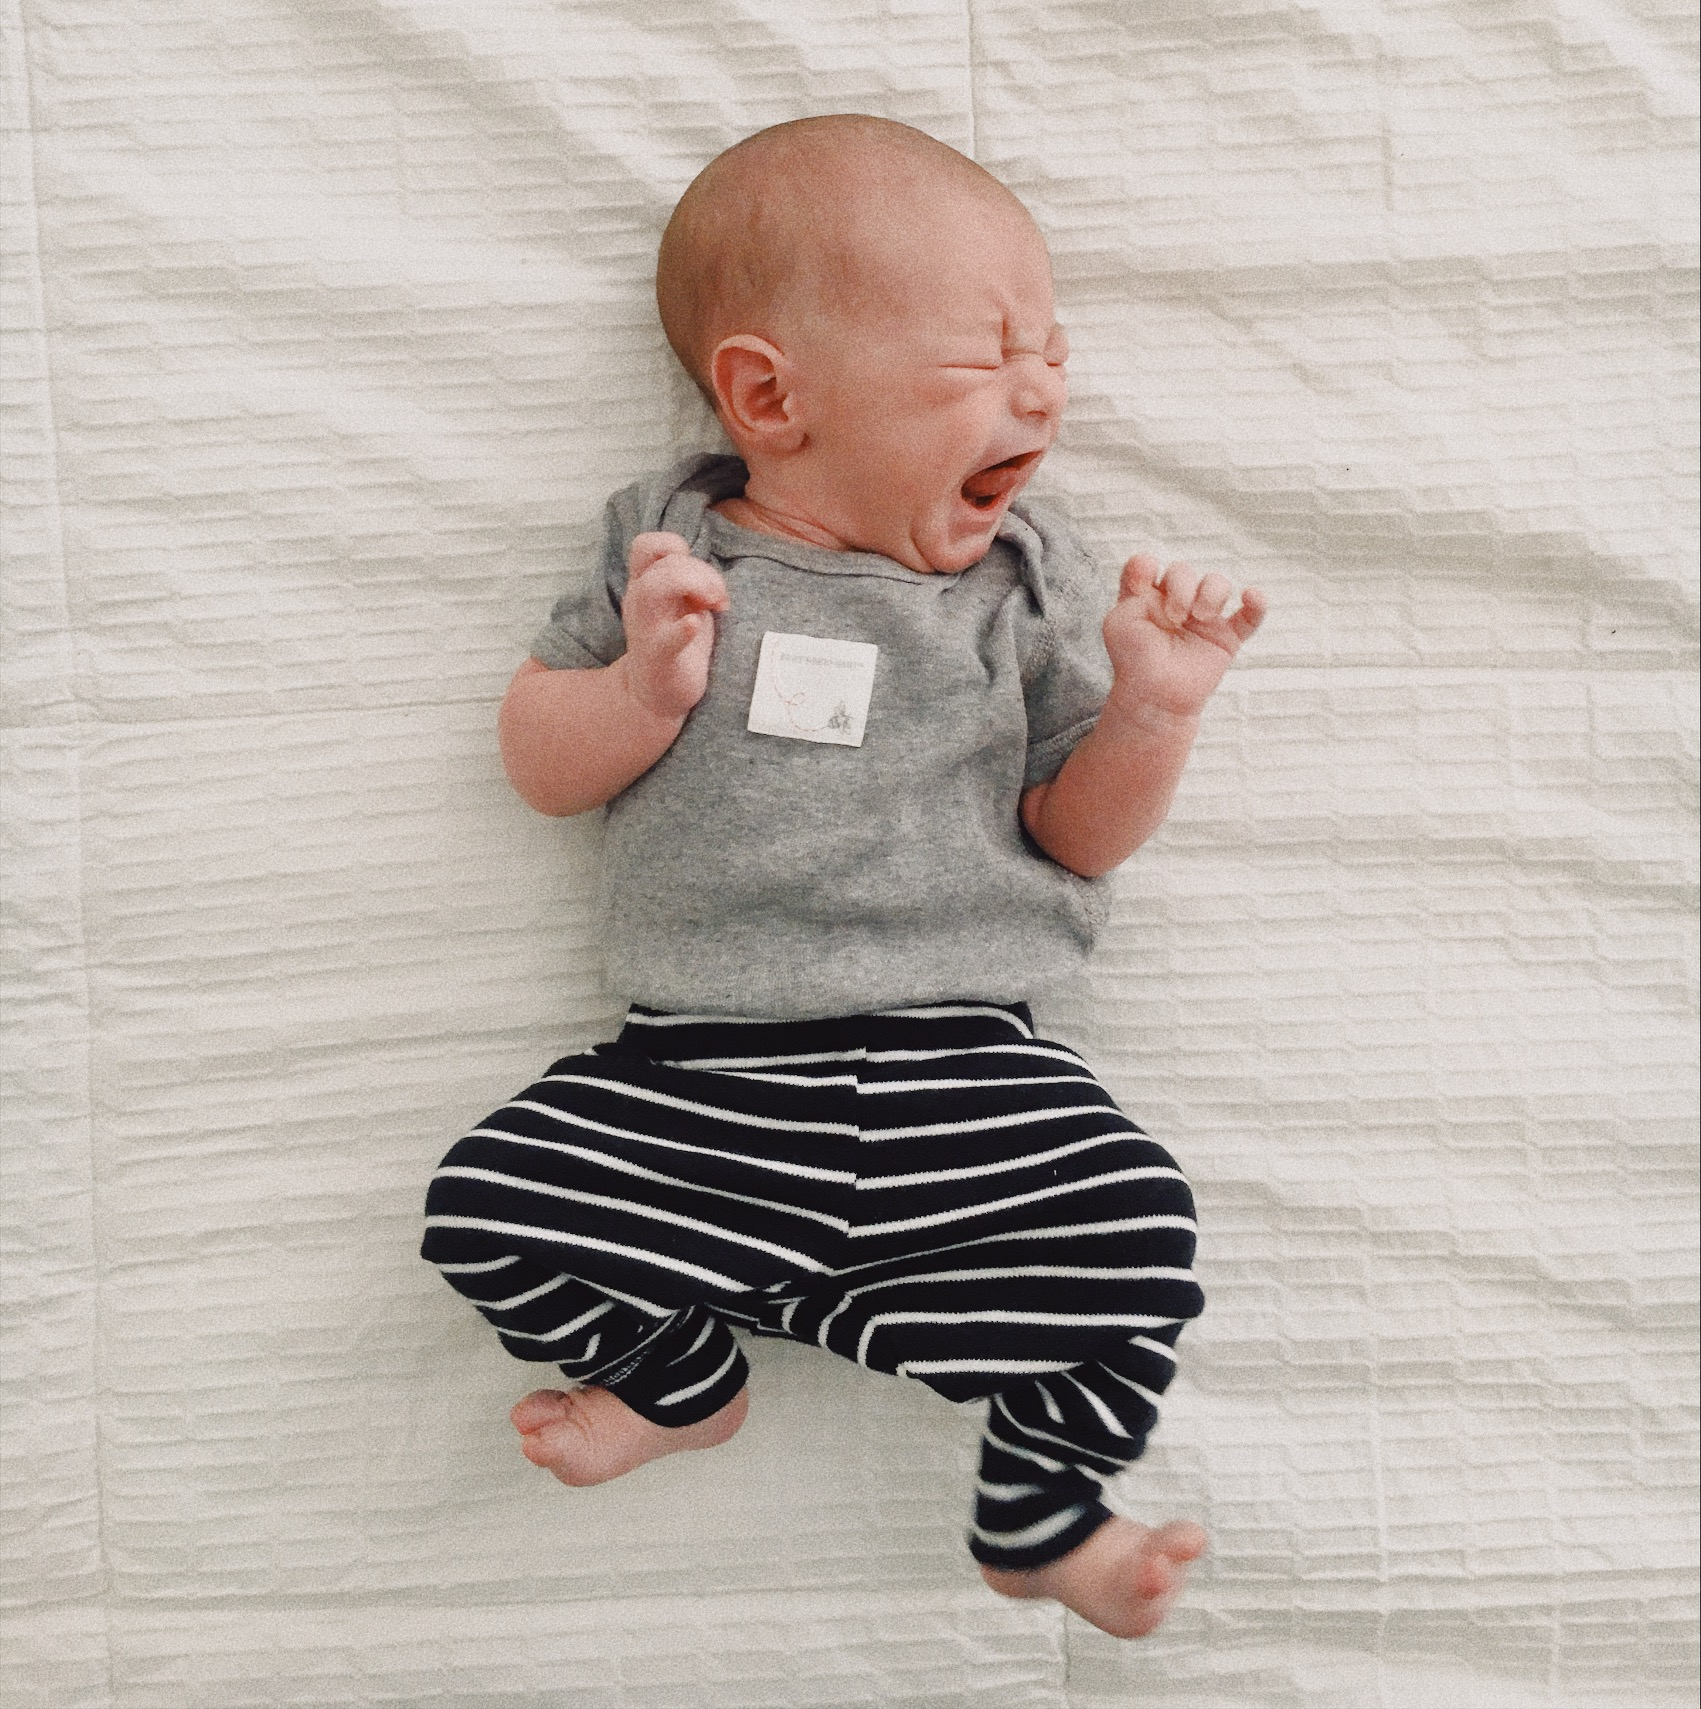 My Birth Story: My Vagina is Just Fine, Thanks